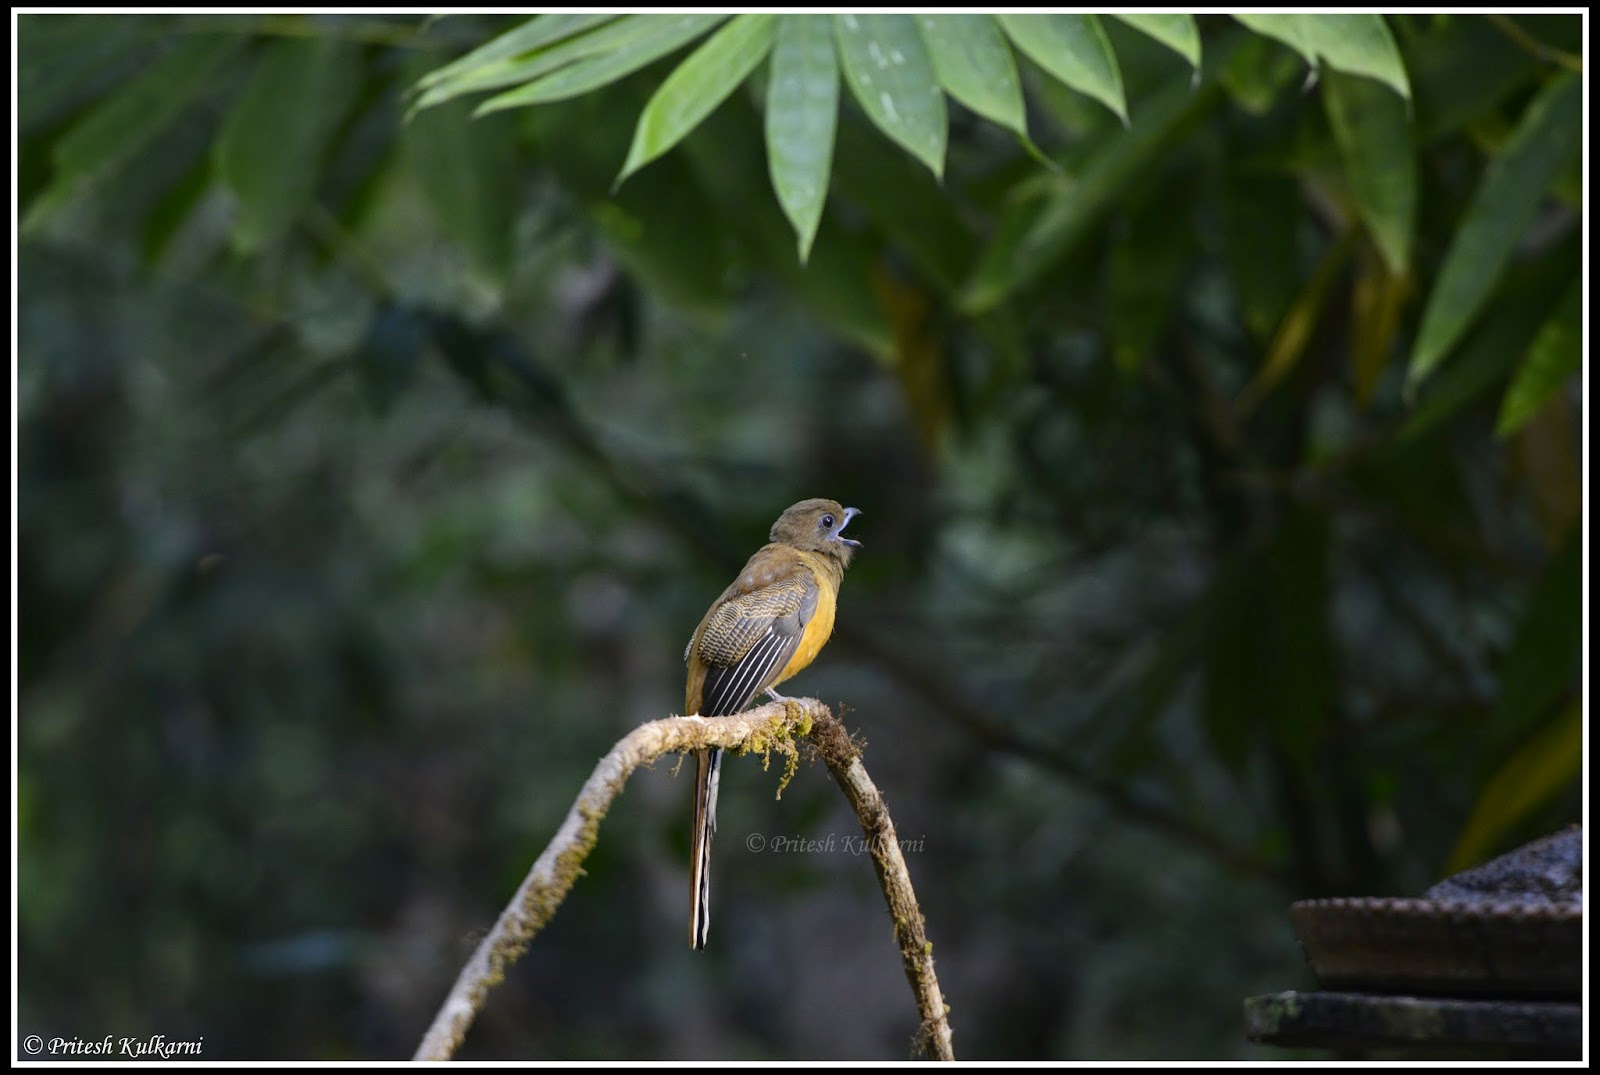 Malabar Trogon Female at Old Magazine House